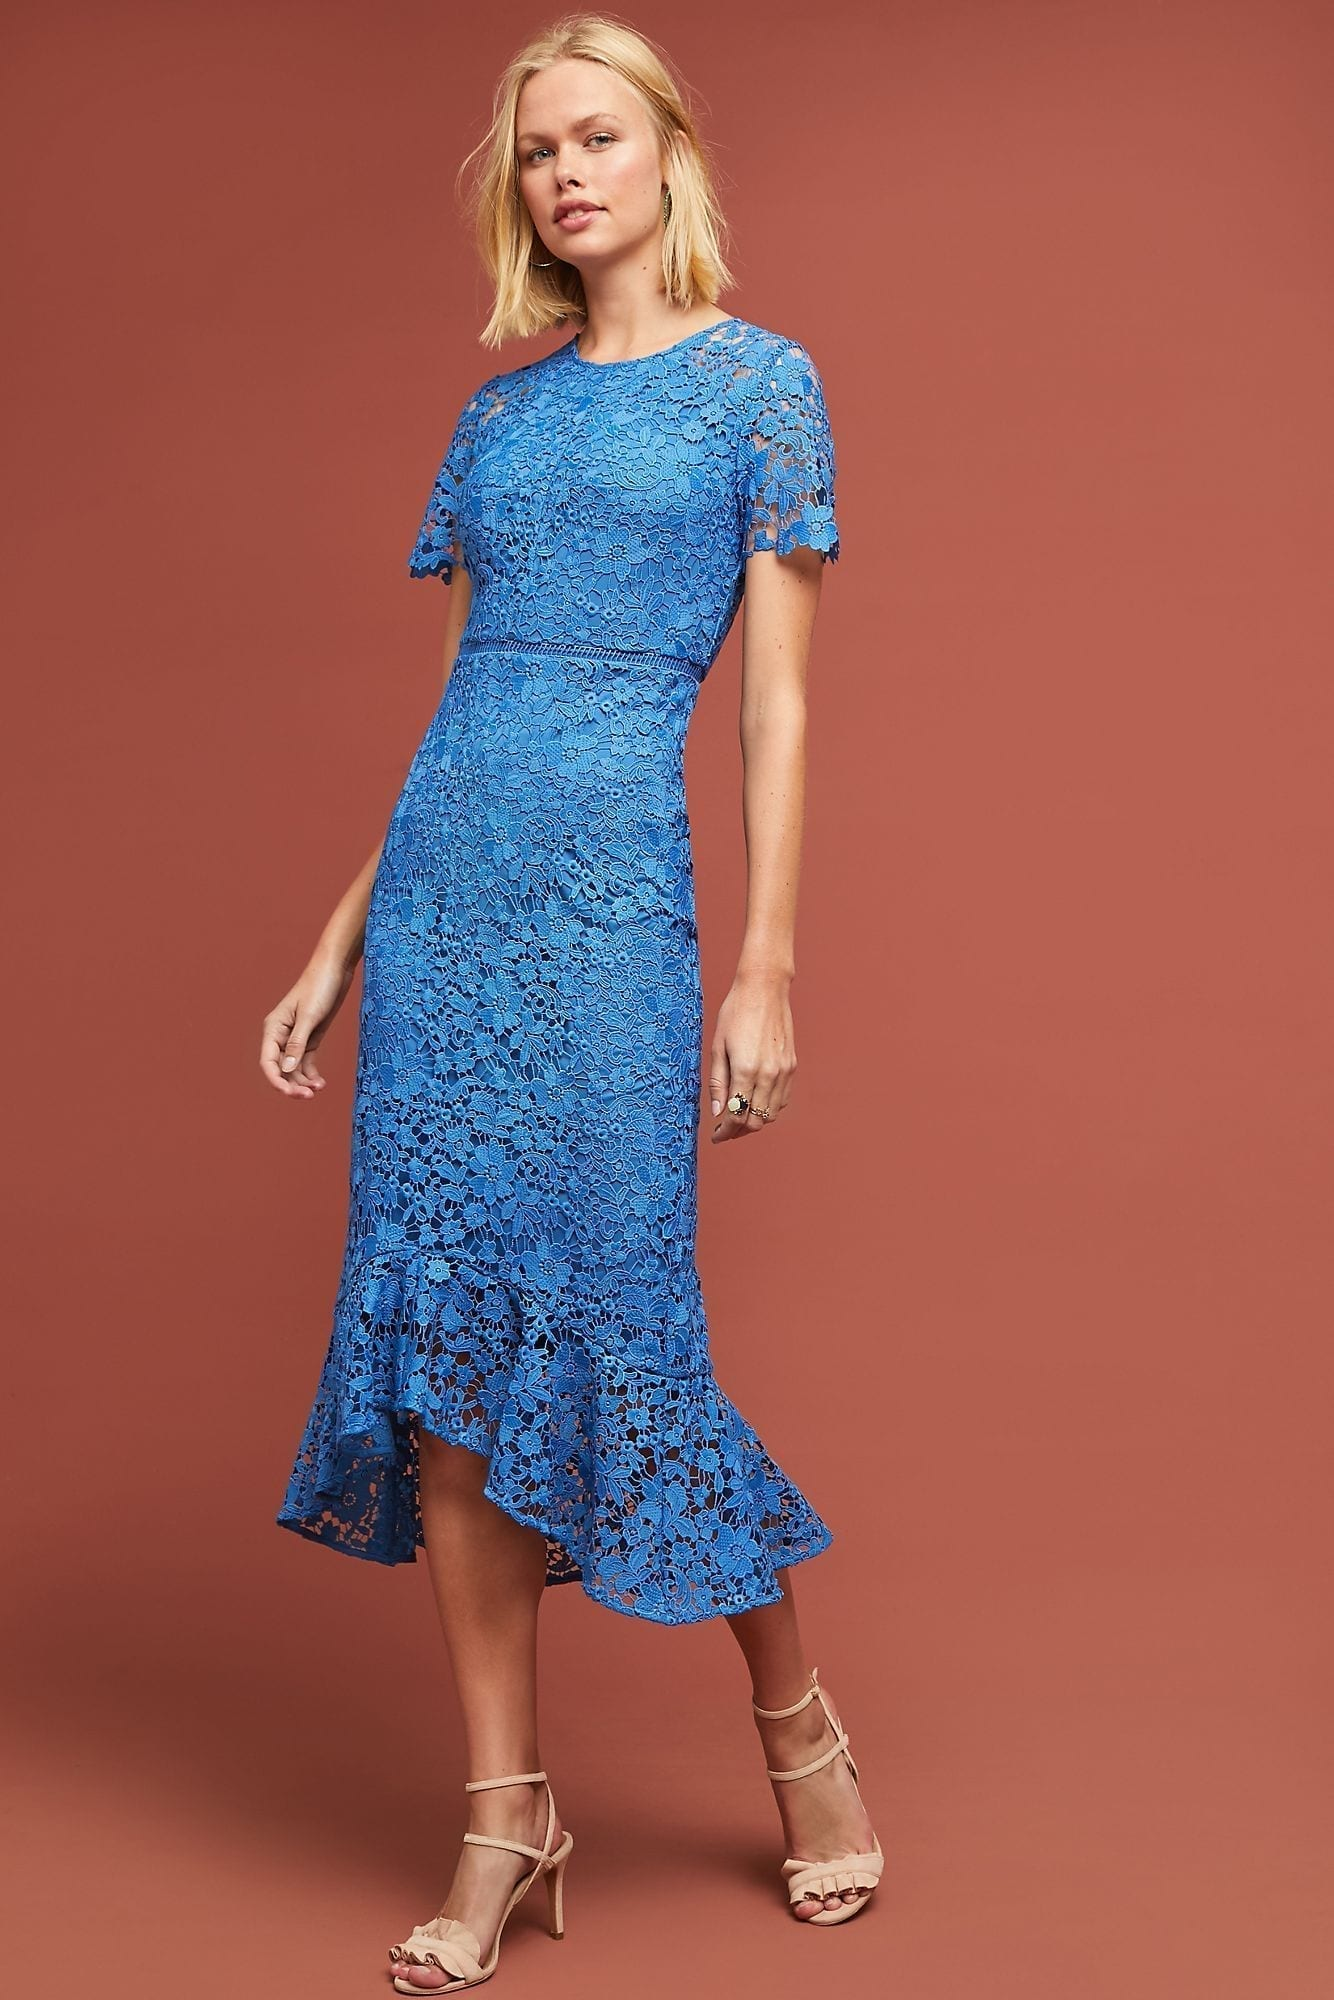 dbfa6a54 SHOSHANNA Shoshanna Celine Lace Blue Dress - We Select Dresses